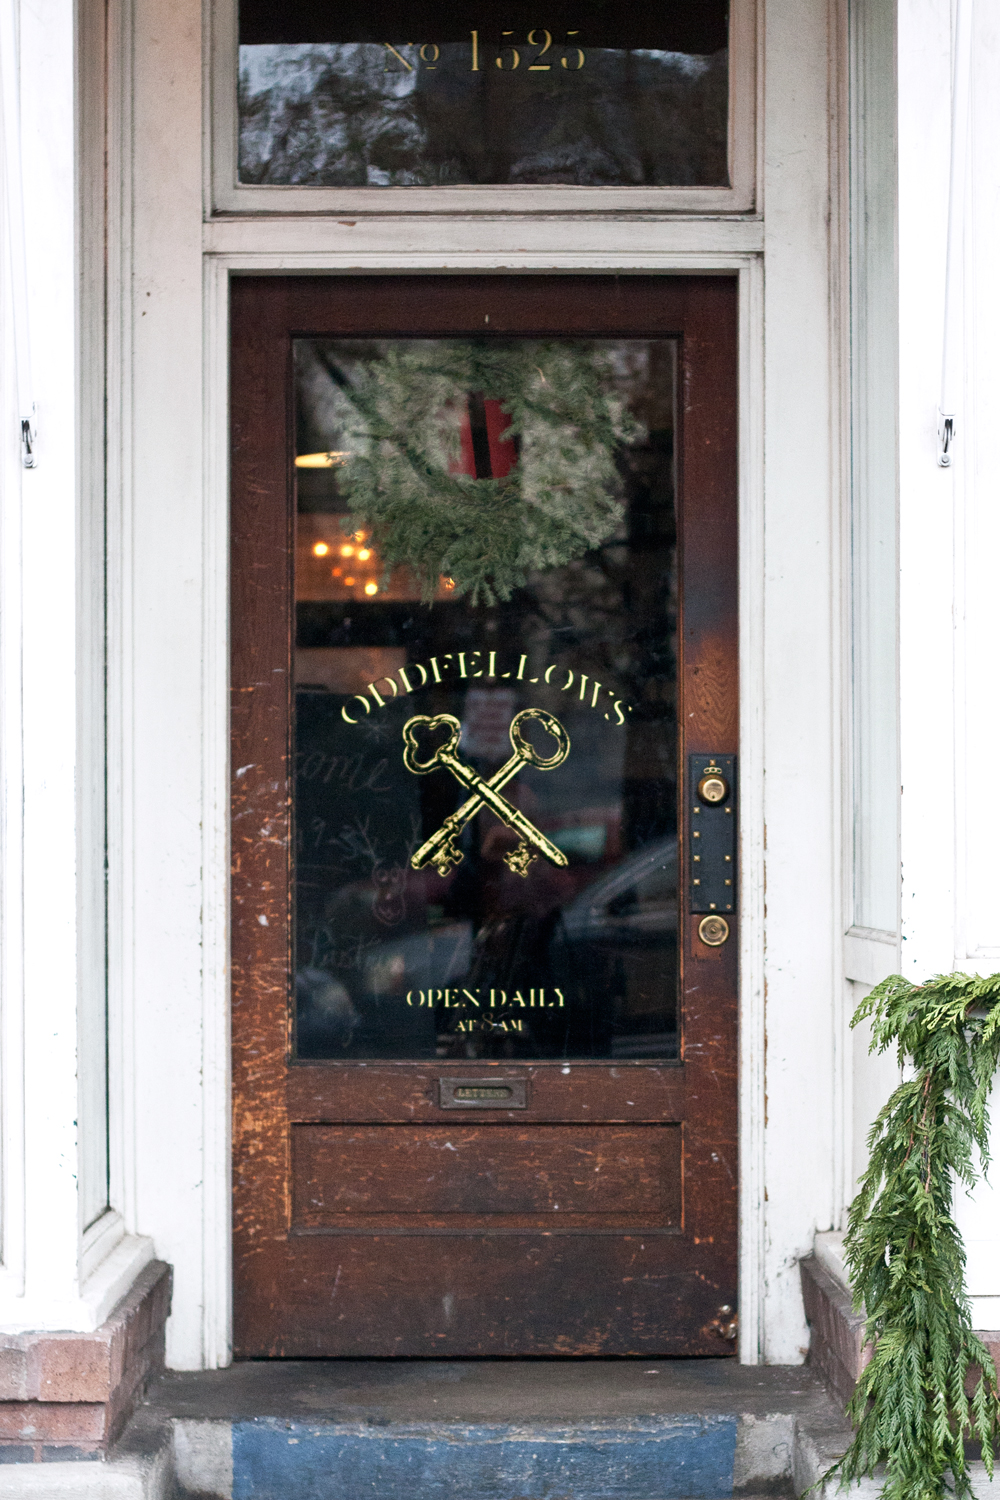 04-oddfellows-seattle-food-foodie-restaurant-cafe